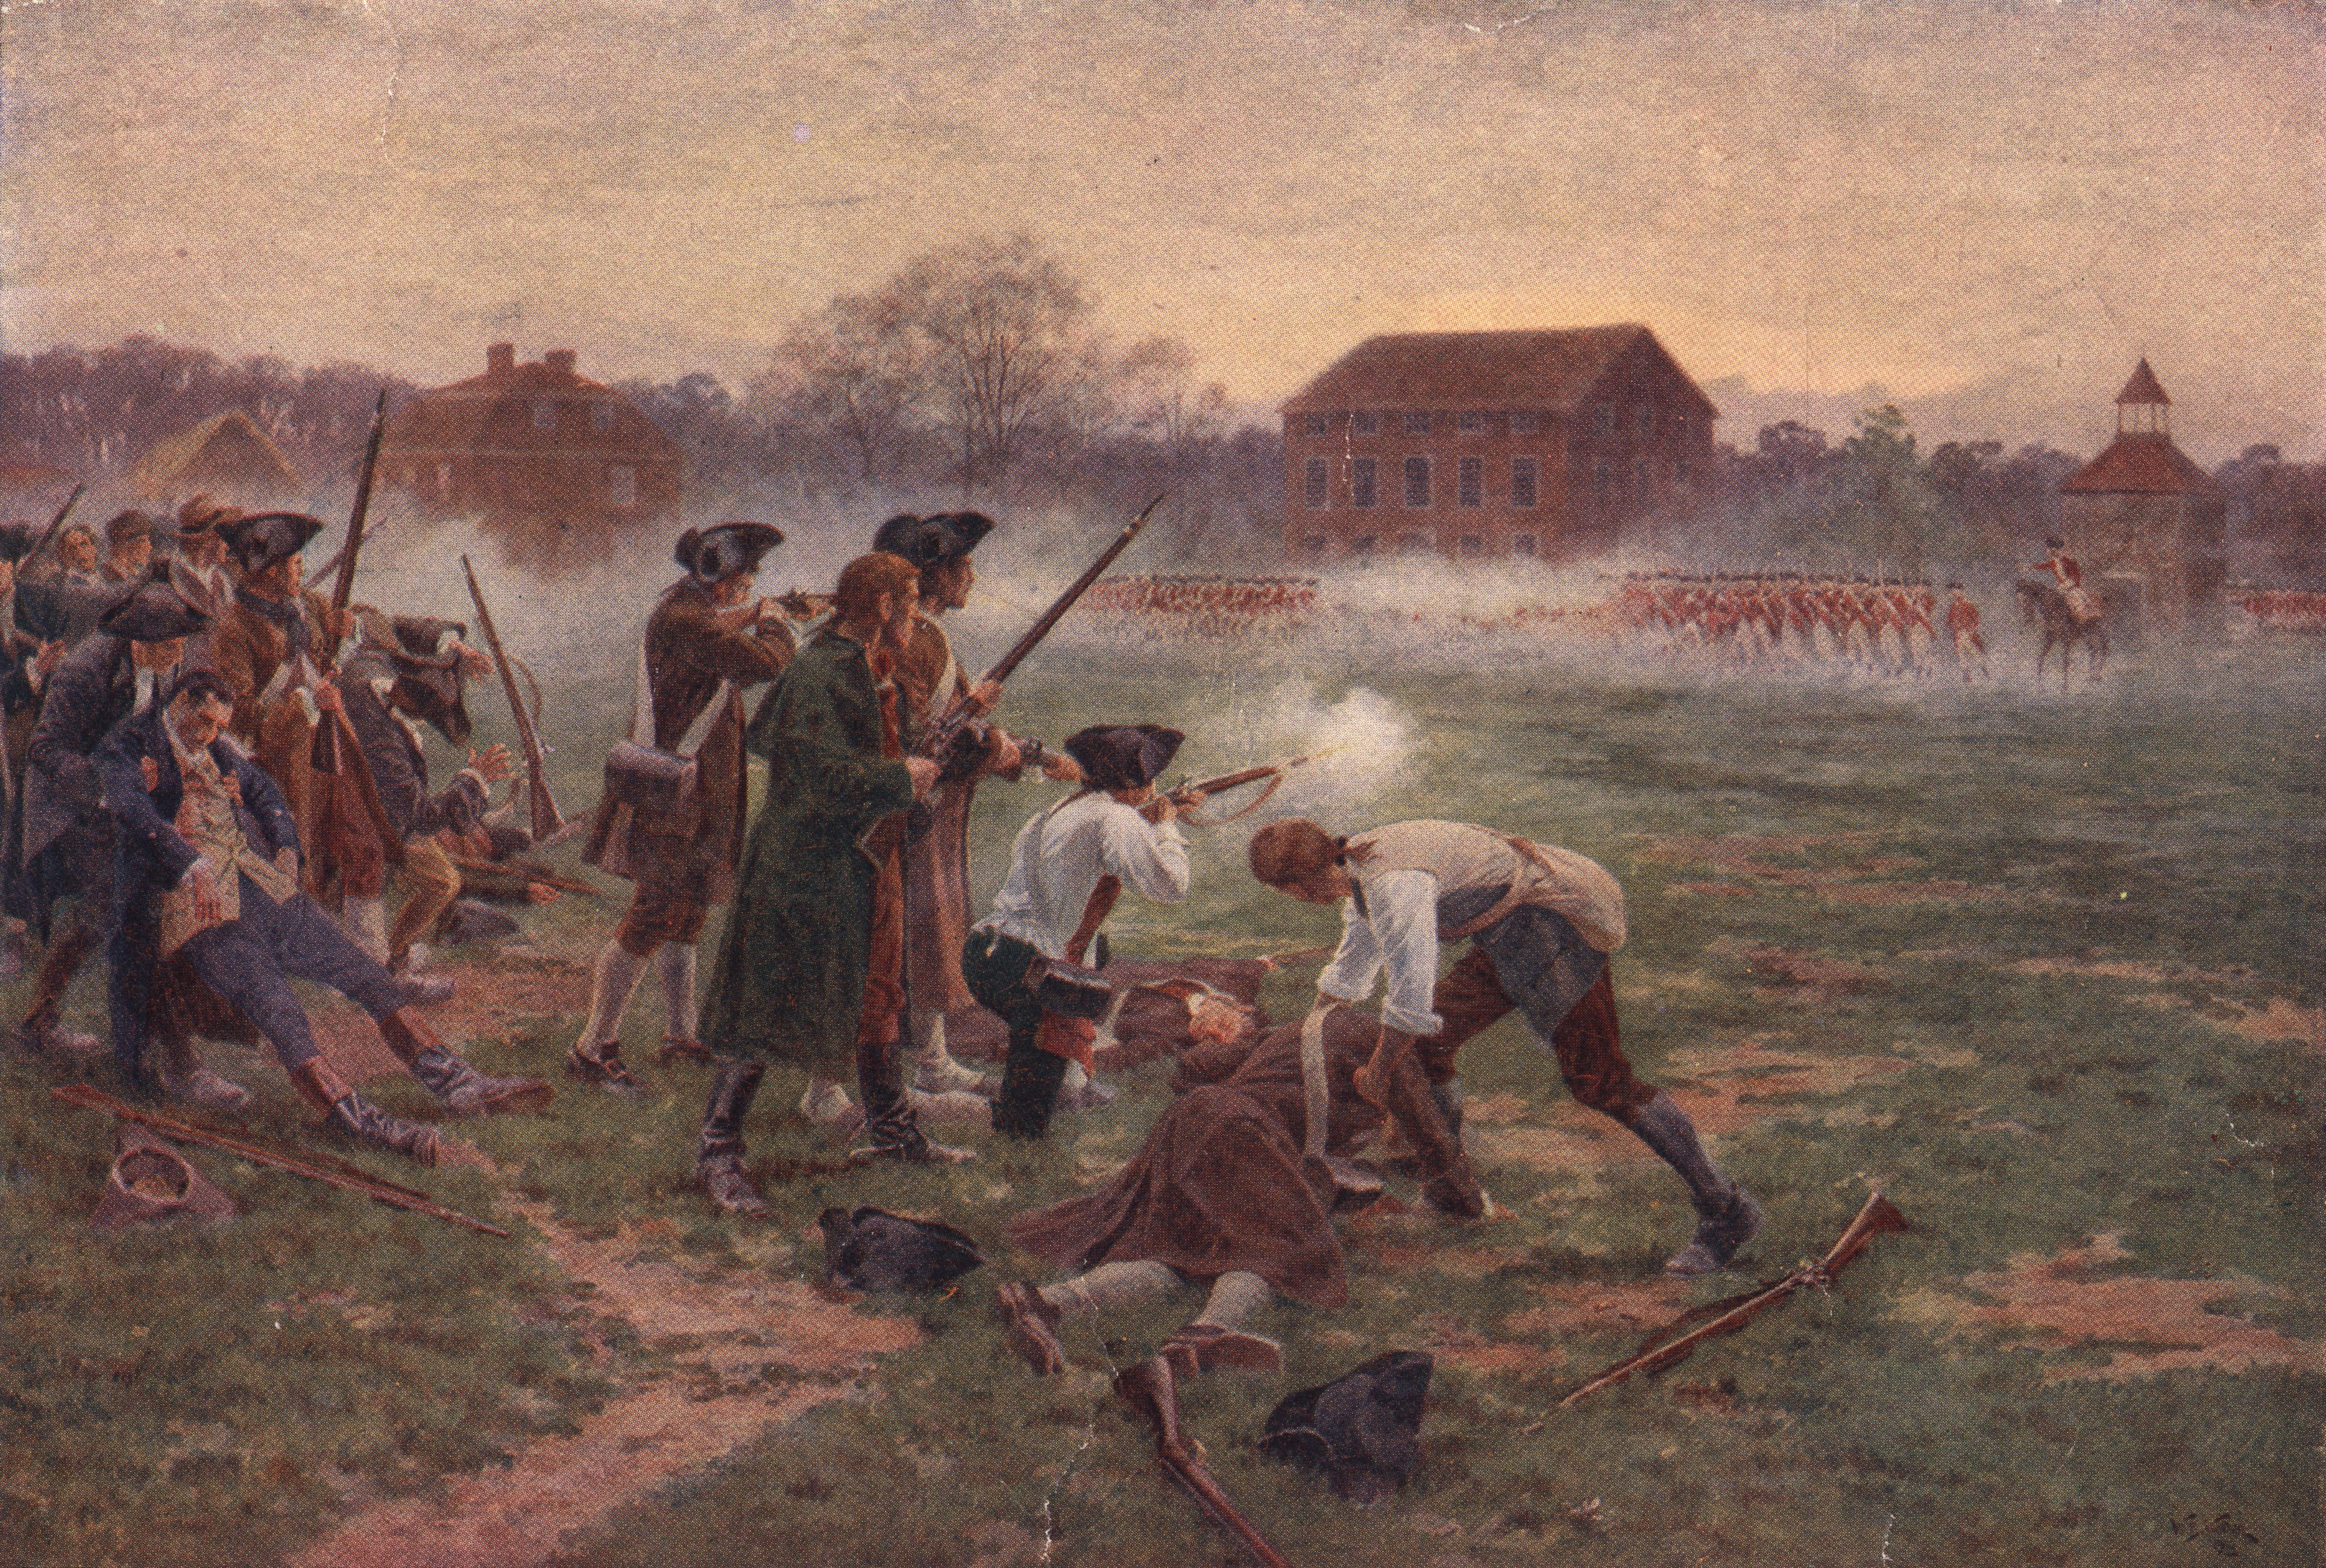 Minutemen facing British soldiers on Lexington Common, Massachusetts, in the first battle in the War of Independence, 19th April 1775. Original artist William Barnes Wollen. (Photo by Hulton Archive/Getty Images)